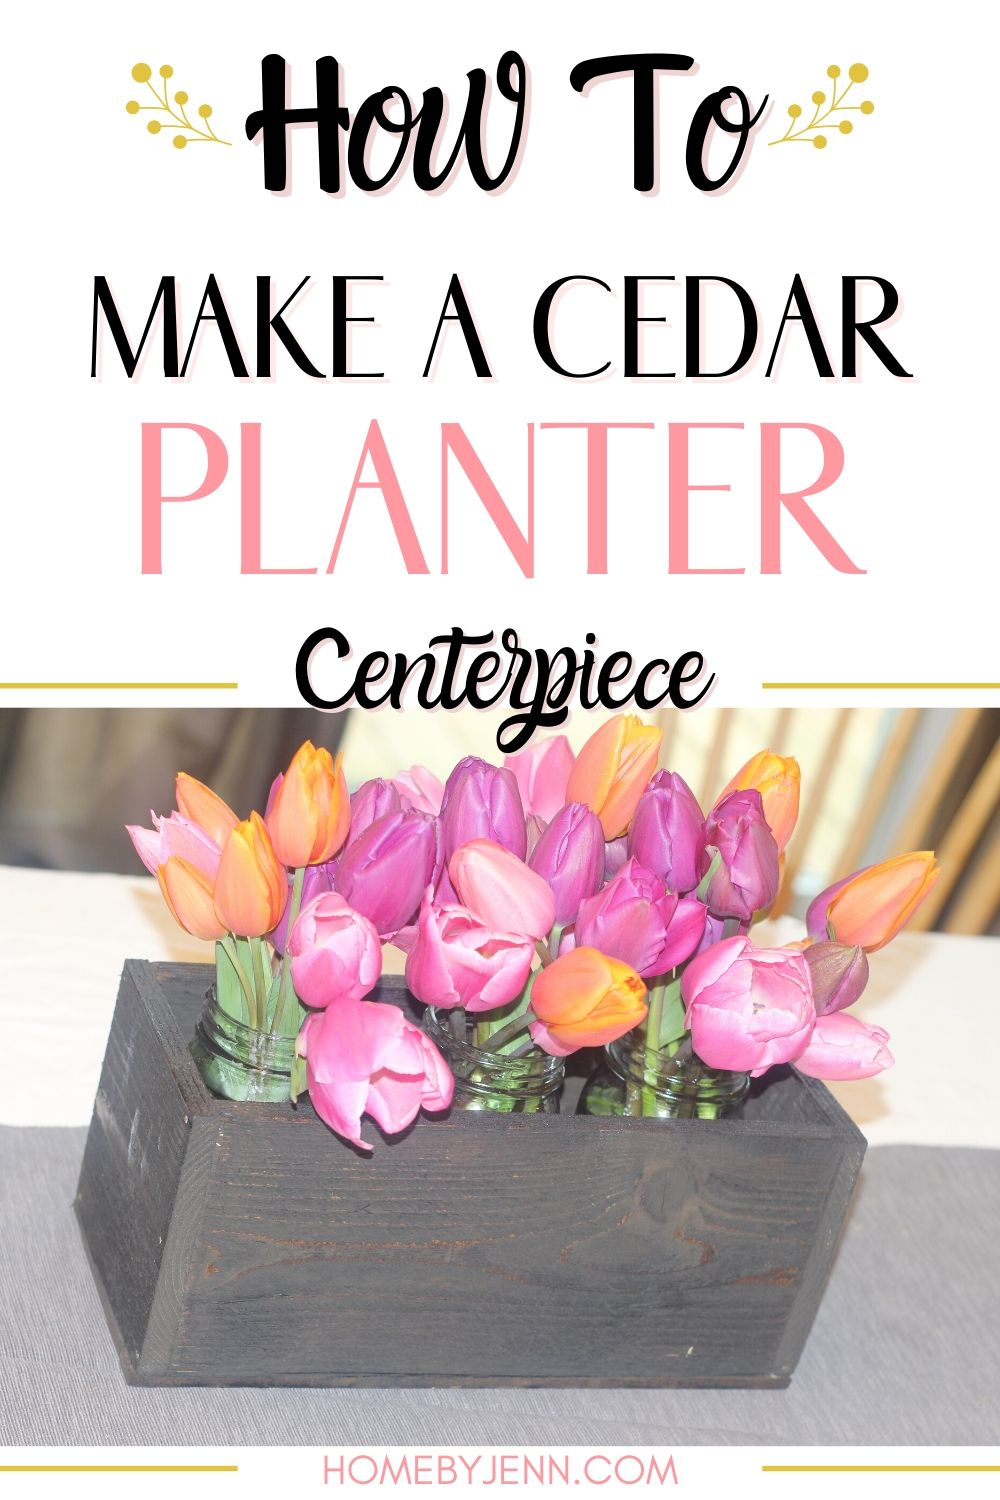 Build this cedar planter centerpiece to display a beautiful floral display. This is a perfect beginner DIY woodworking project. #DIY #diyproject #woodworking #rustic #homedecor #centerpiece via @homebyjenn